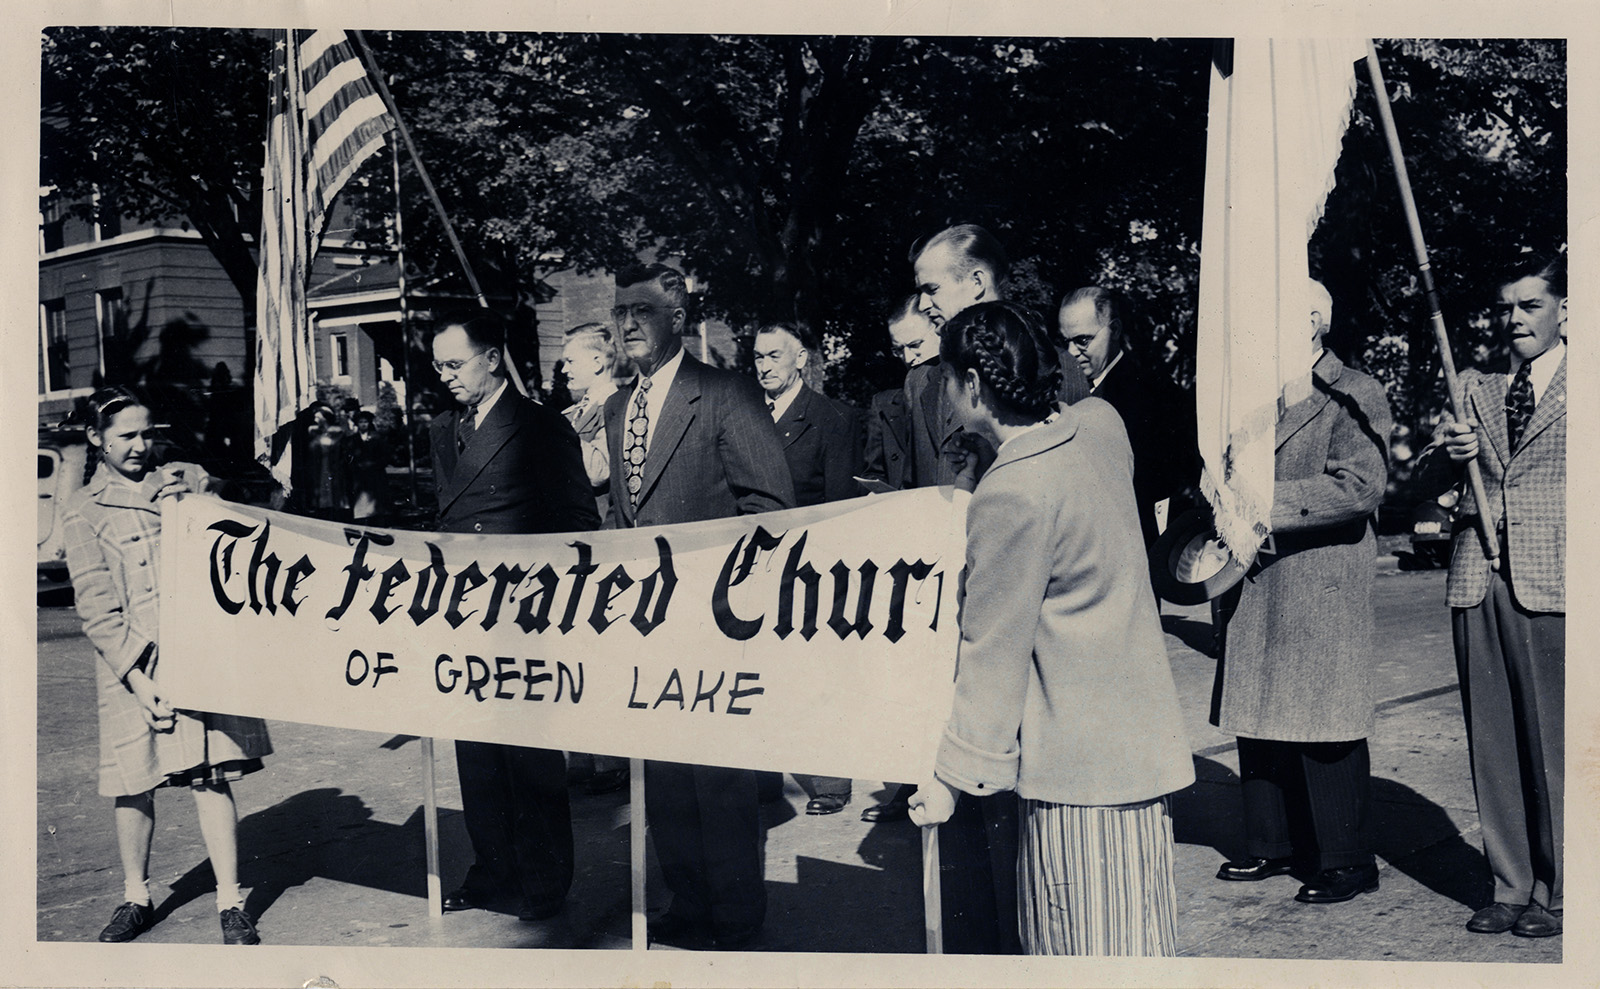 The new replaces the old as these two girls unfurl a scroll, covering the names of the three former separate churches in 1948 in Green Lake, Wisconsin. The unrolling of the Federated Church scroll signaled the three congregations, Congregational, Baptist and Methodist, to move forward to unite. The scroll bearers are Marion Palmer, left, and Roxanna Thrall. RNS archive photo by A.W. Grube. Photo courtesy of the Presbyterian Historical Society